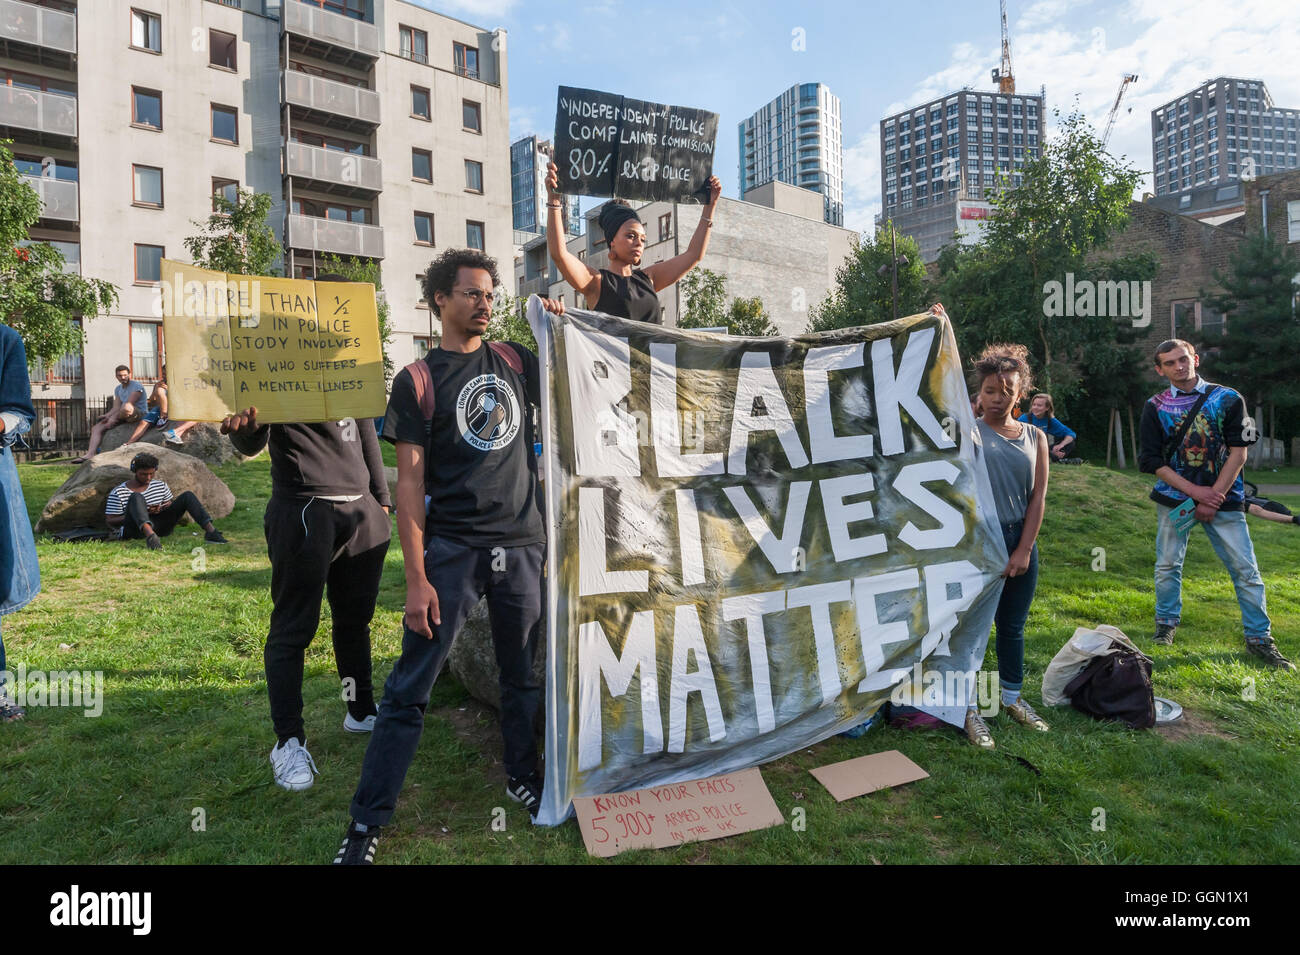 London, UK. 5th Aug, 2016. People pose with placards and the 'Black Lives Matter ' banner at the start of - Stock Image